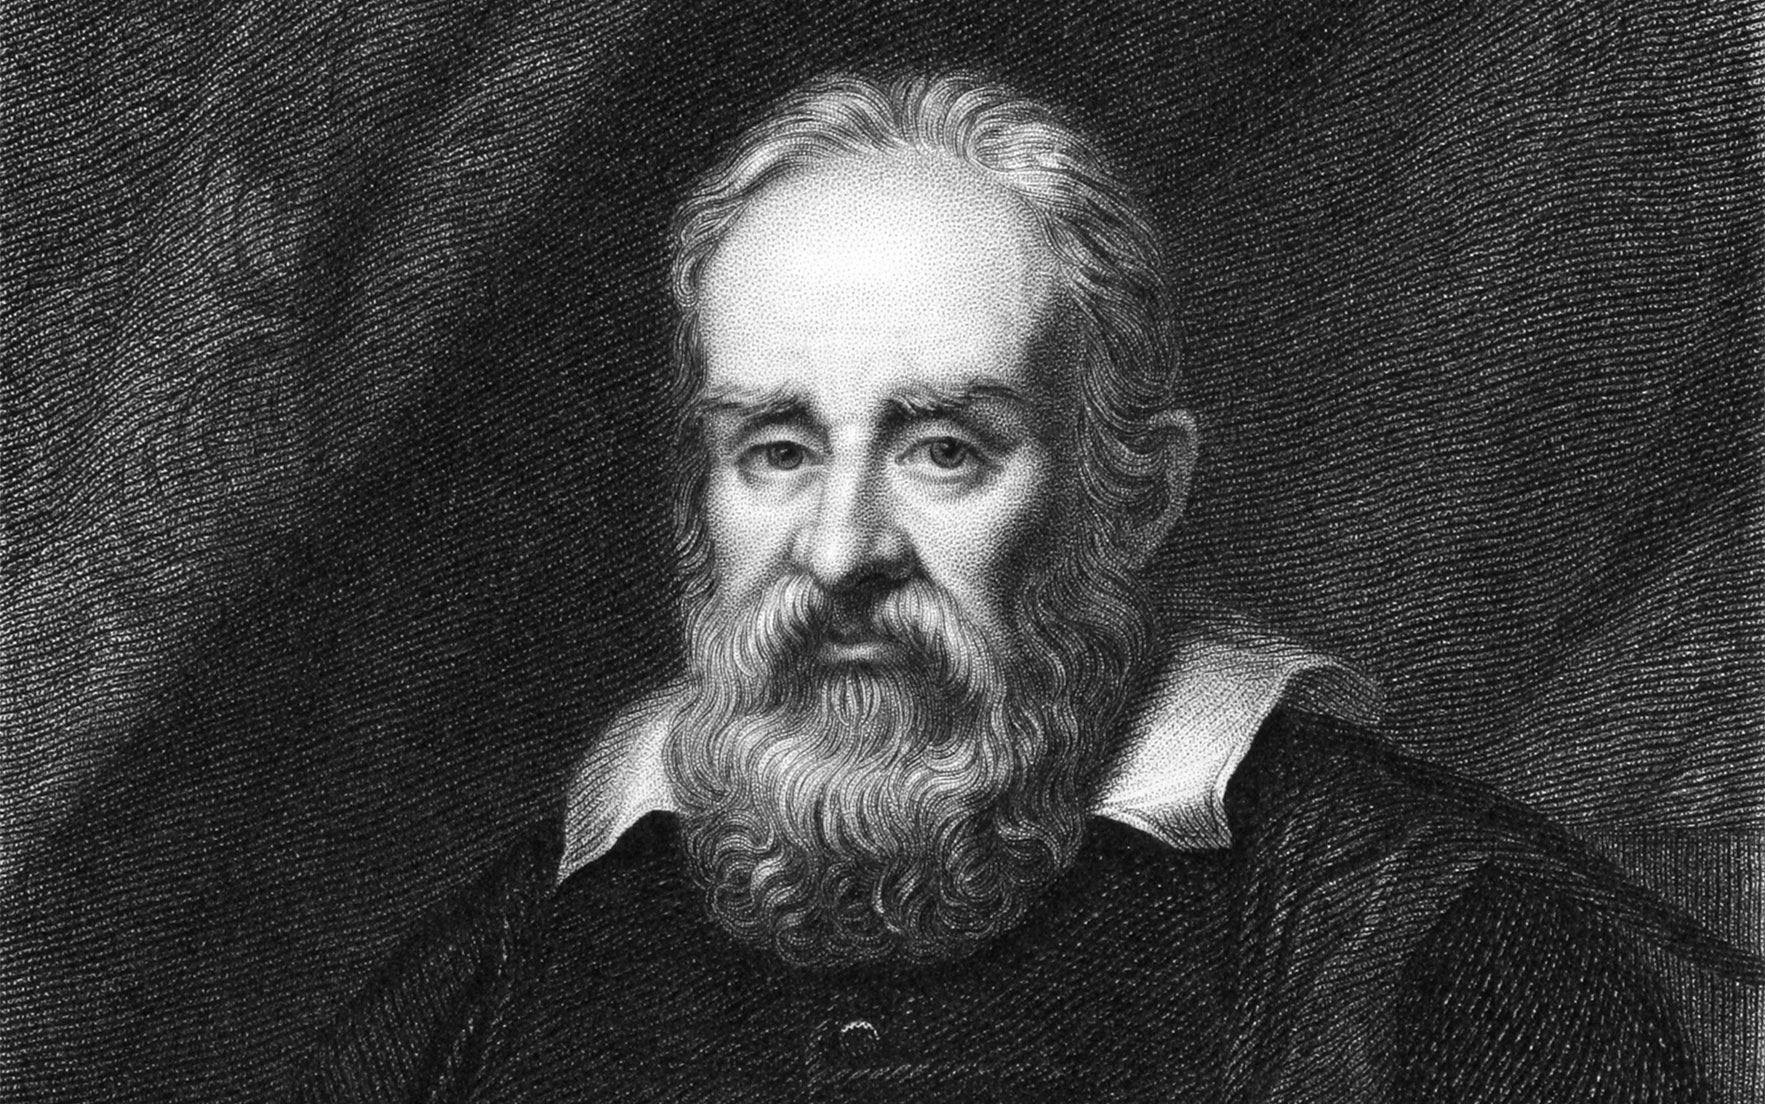 Galileo: The great disruptor